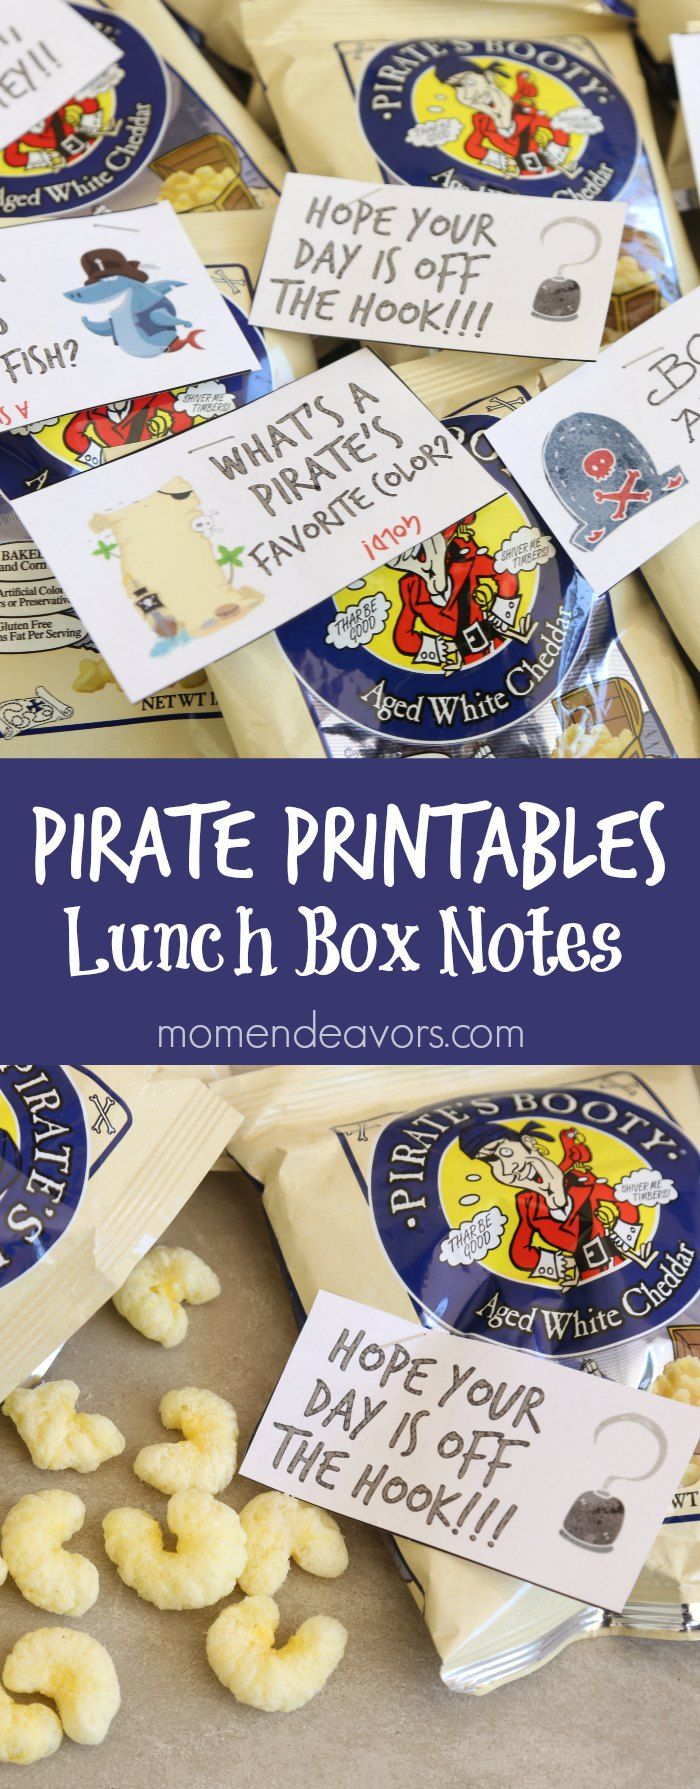 Printable Pirate Lunchbox Notes and Pirate's Booty Snacks - perfect for Talk Like a Pirate Day! #PiratesBootyParty AD